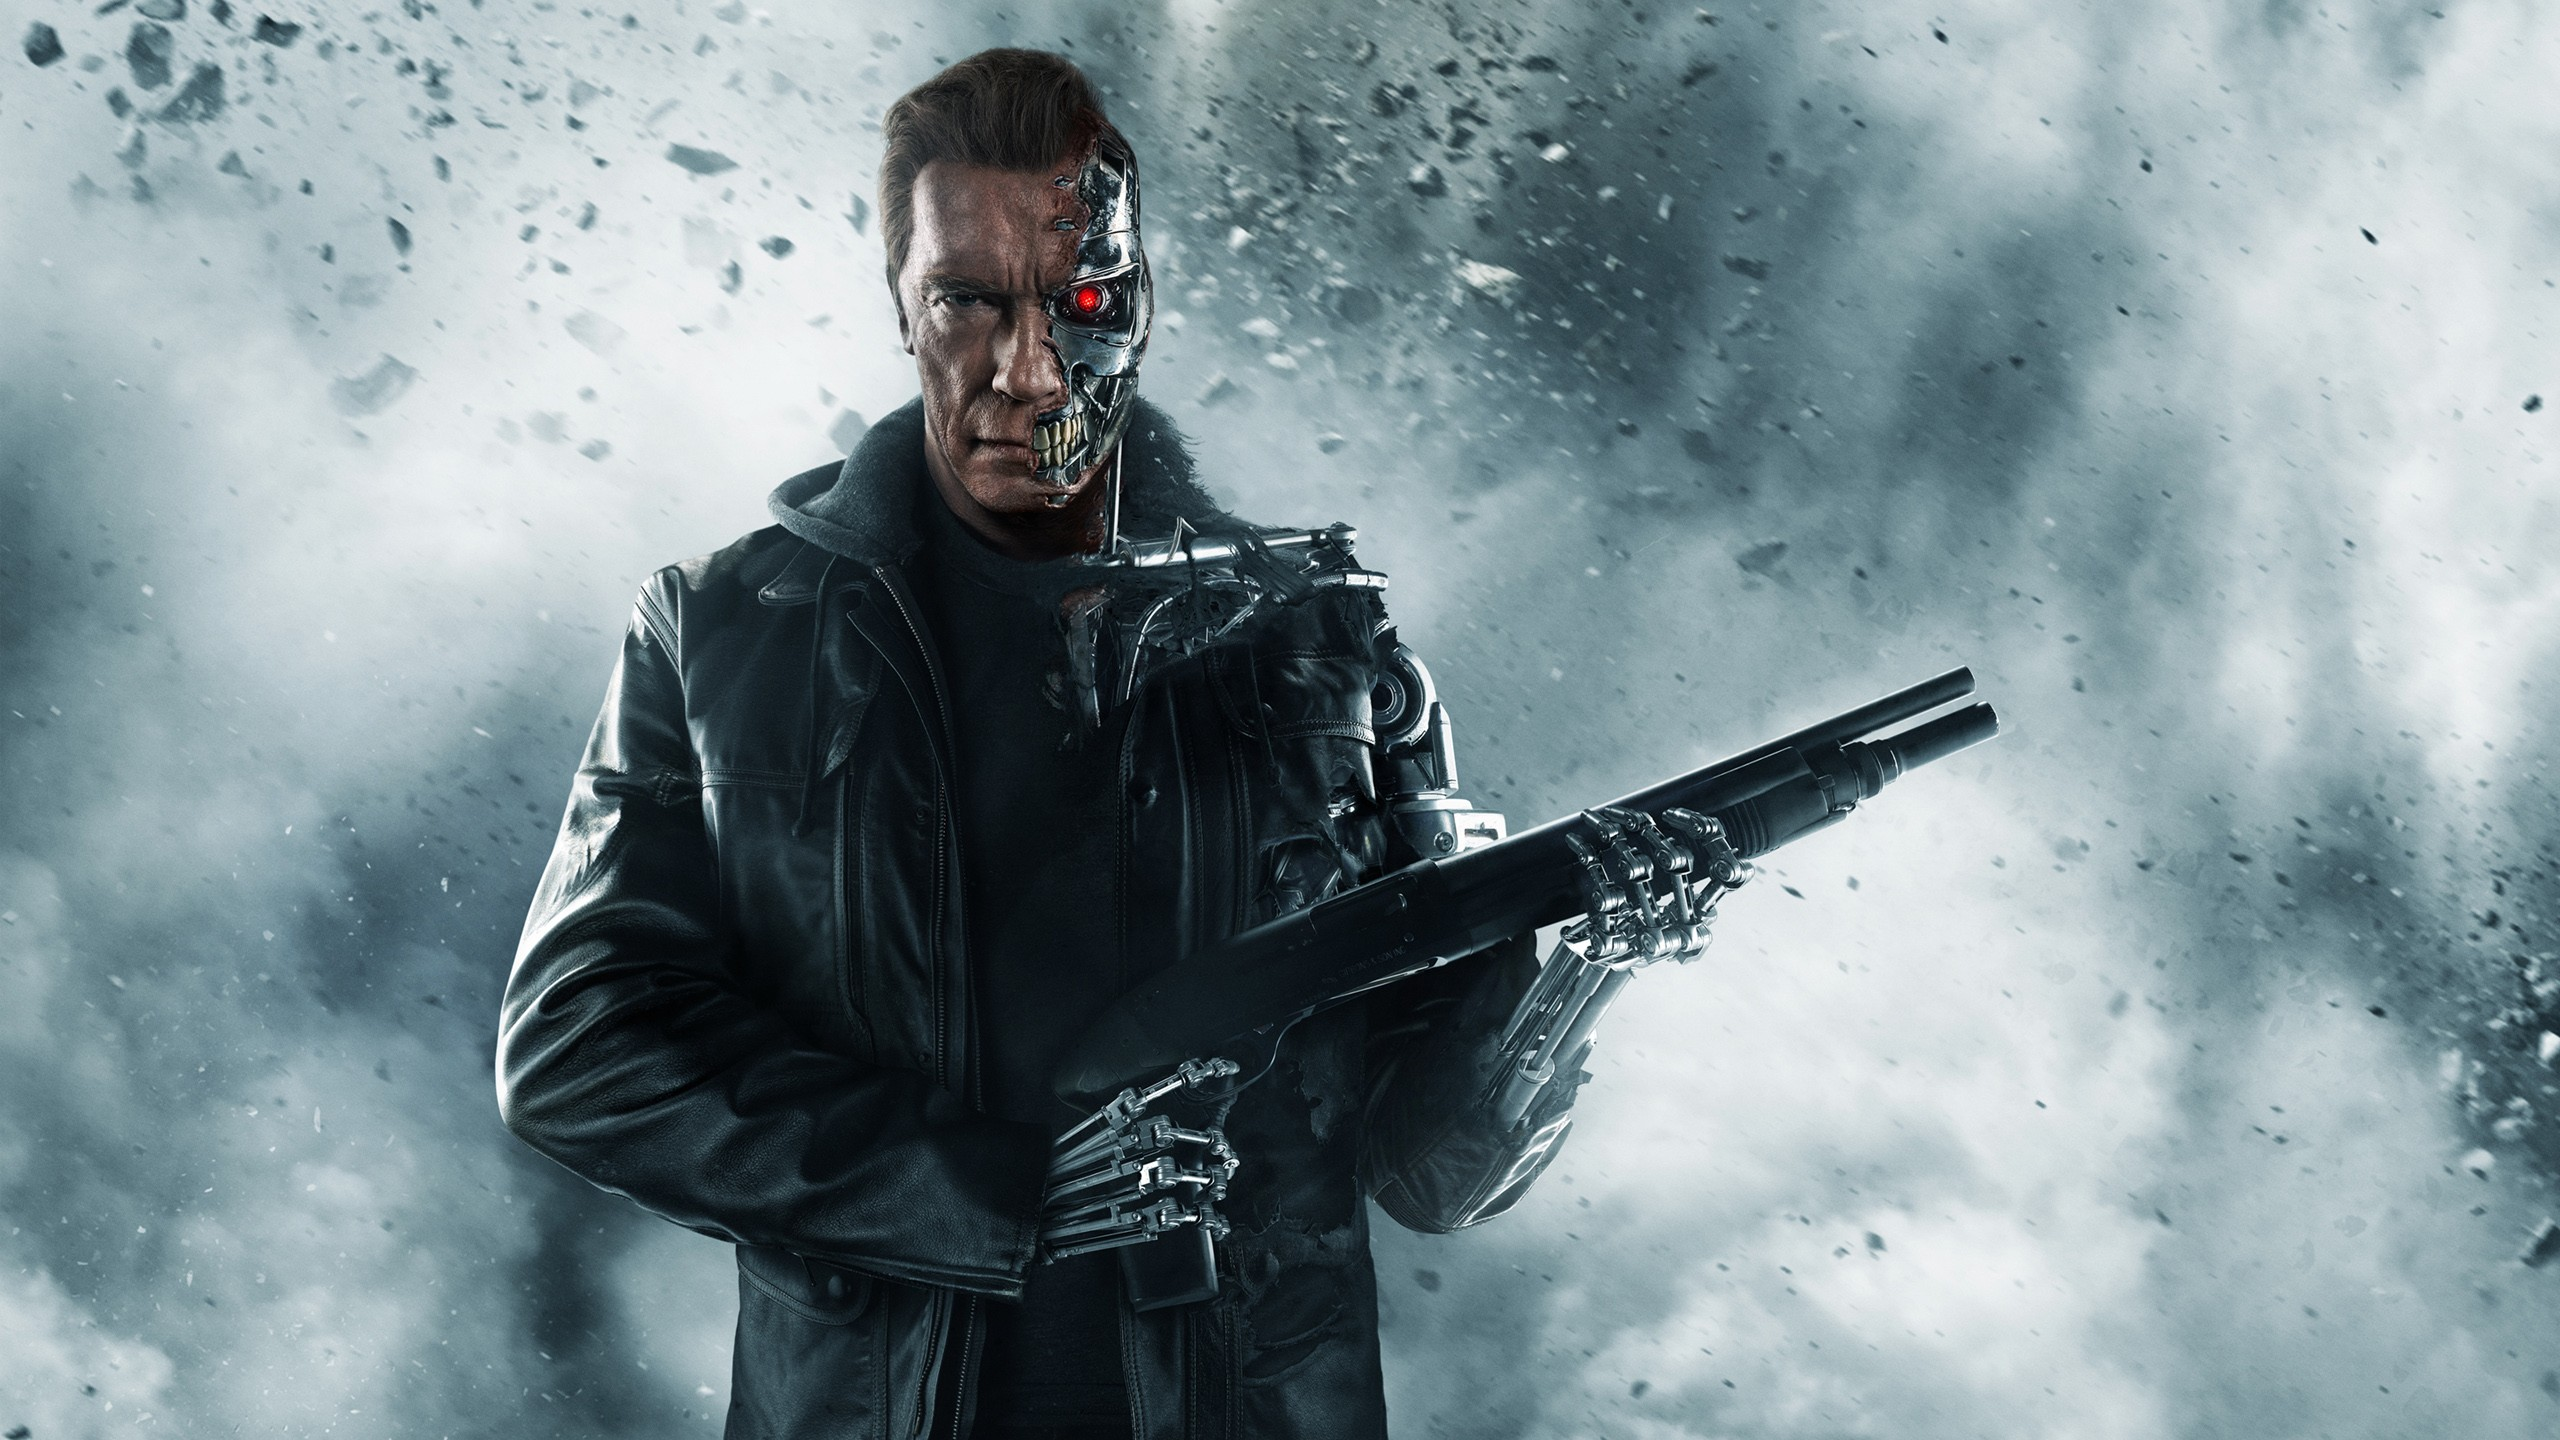 Inspirational Wallpapers Hd Free Download Arnold Schwarzenegger Terminator Wallpapers Hd